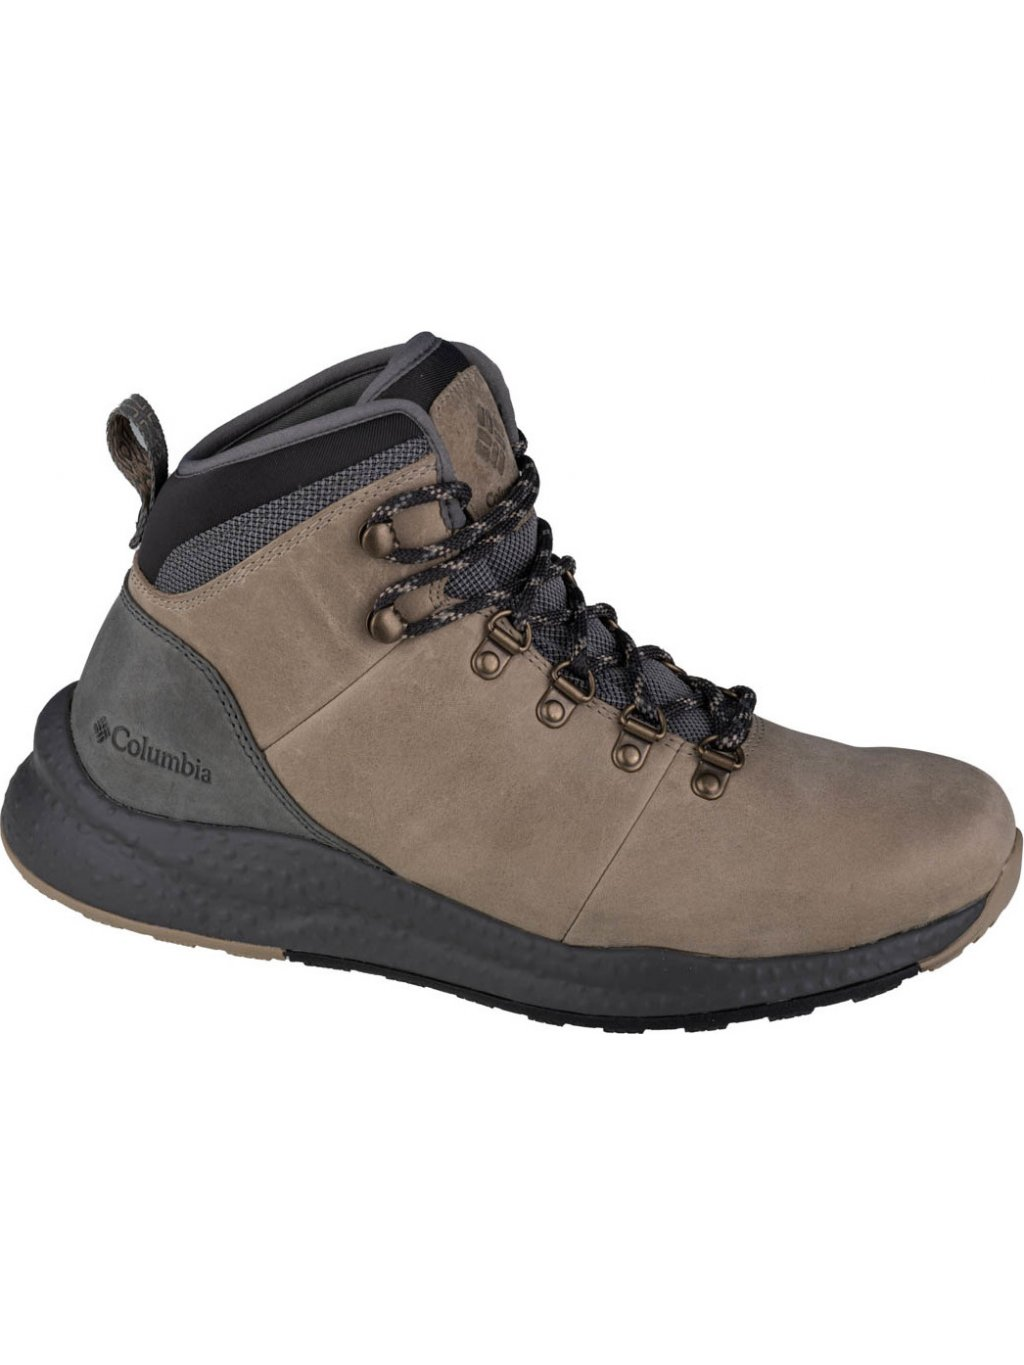 COLUMBIA SH/FT WP HIKER 1878561247